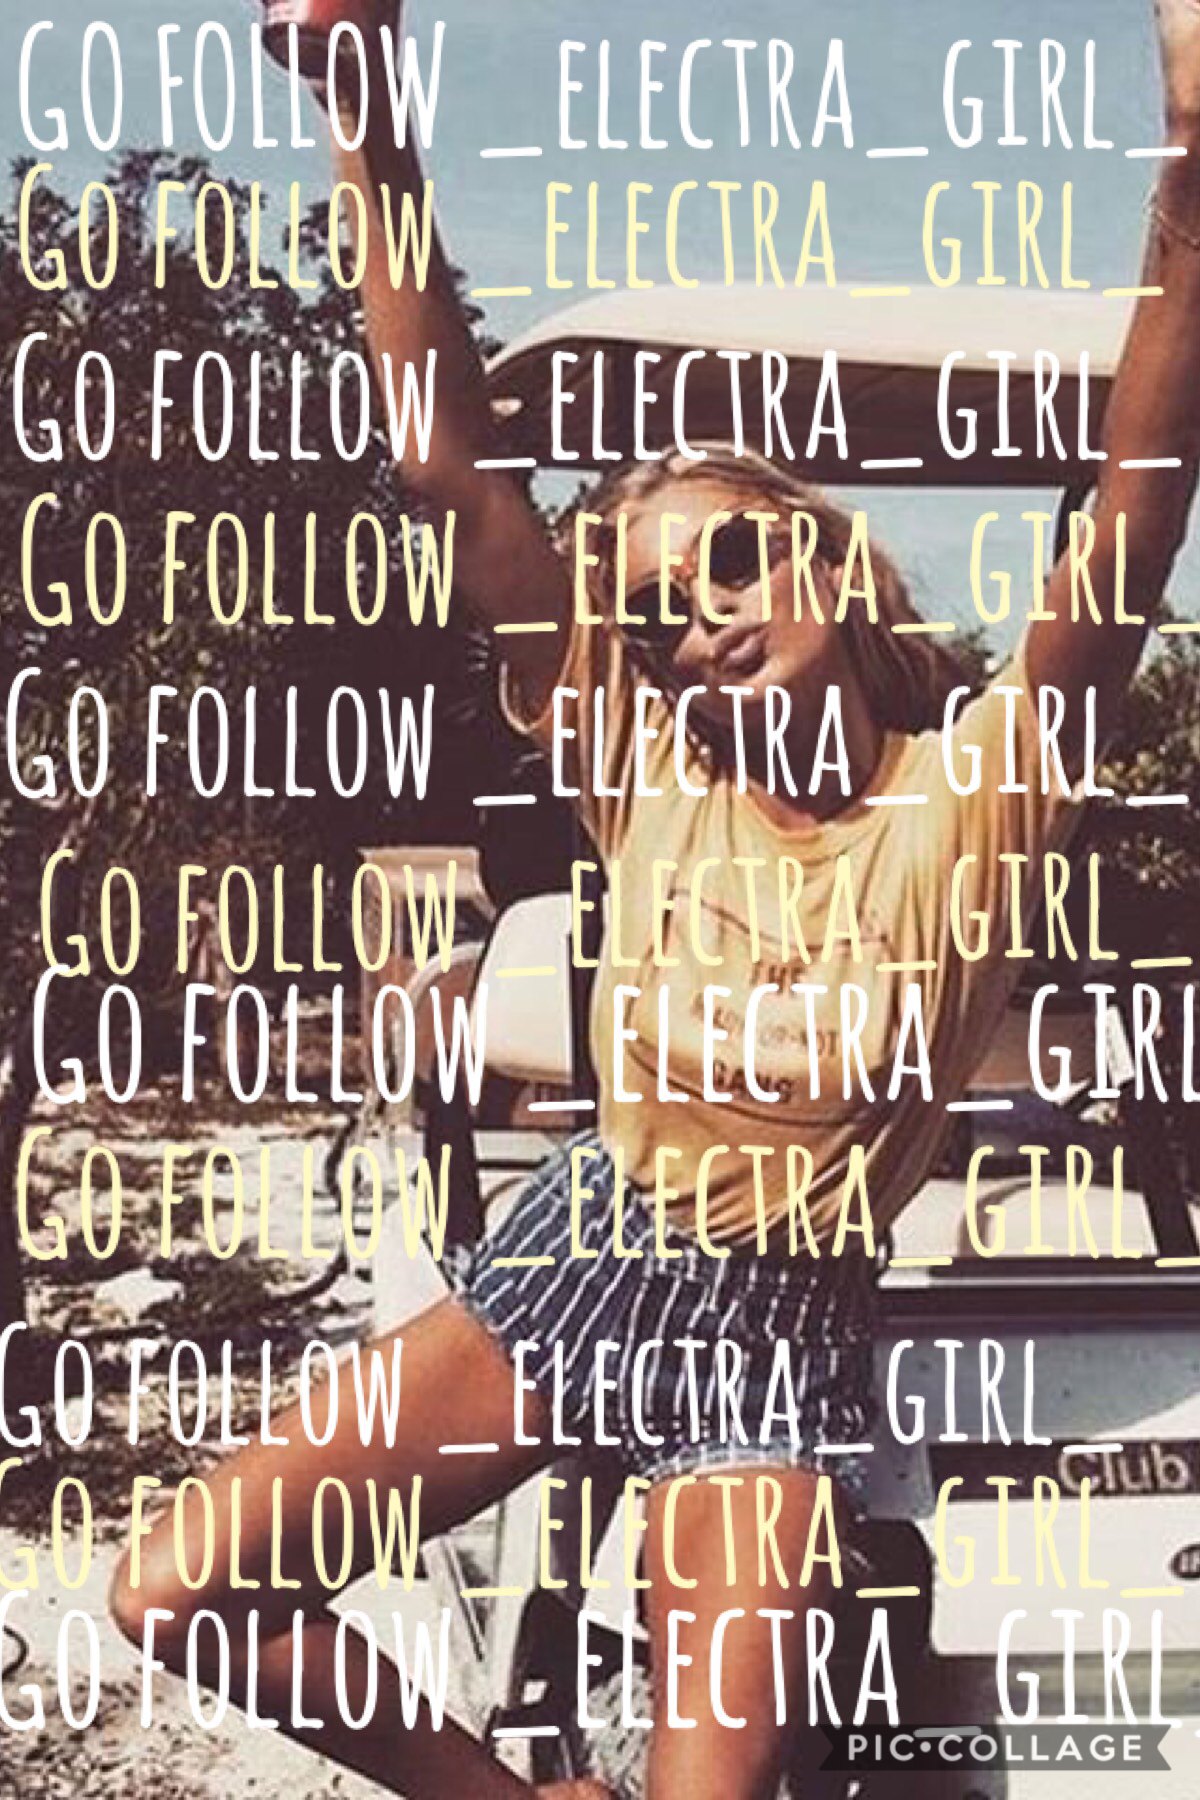 GO FOLLOW _electa_girl_ Her collages r r so pretty!!and she's so creative